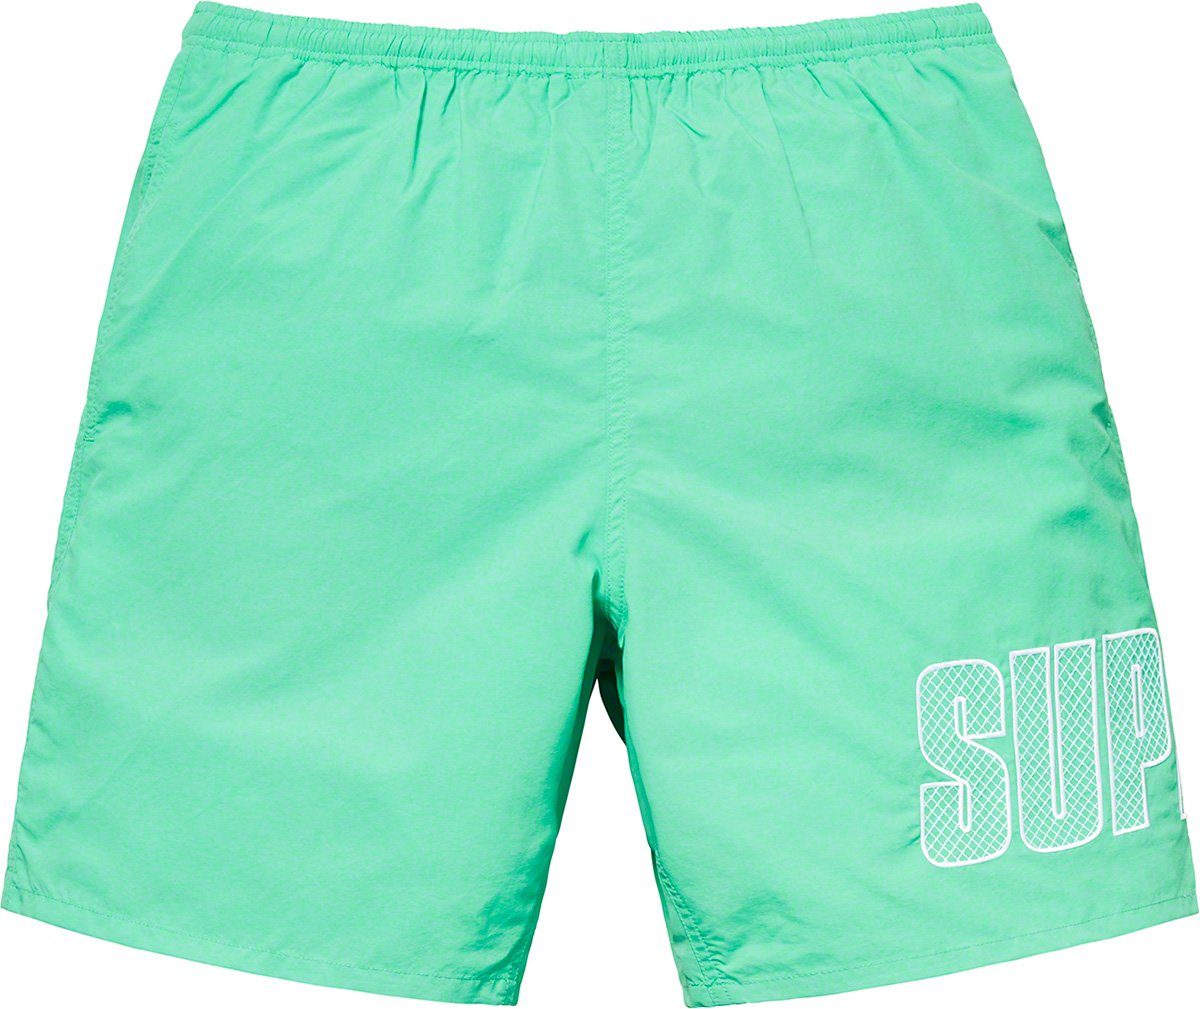 supreme-19ss-spring-summer-logo-applique-water-short